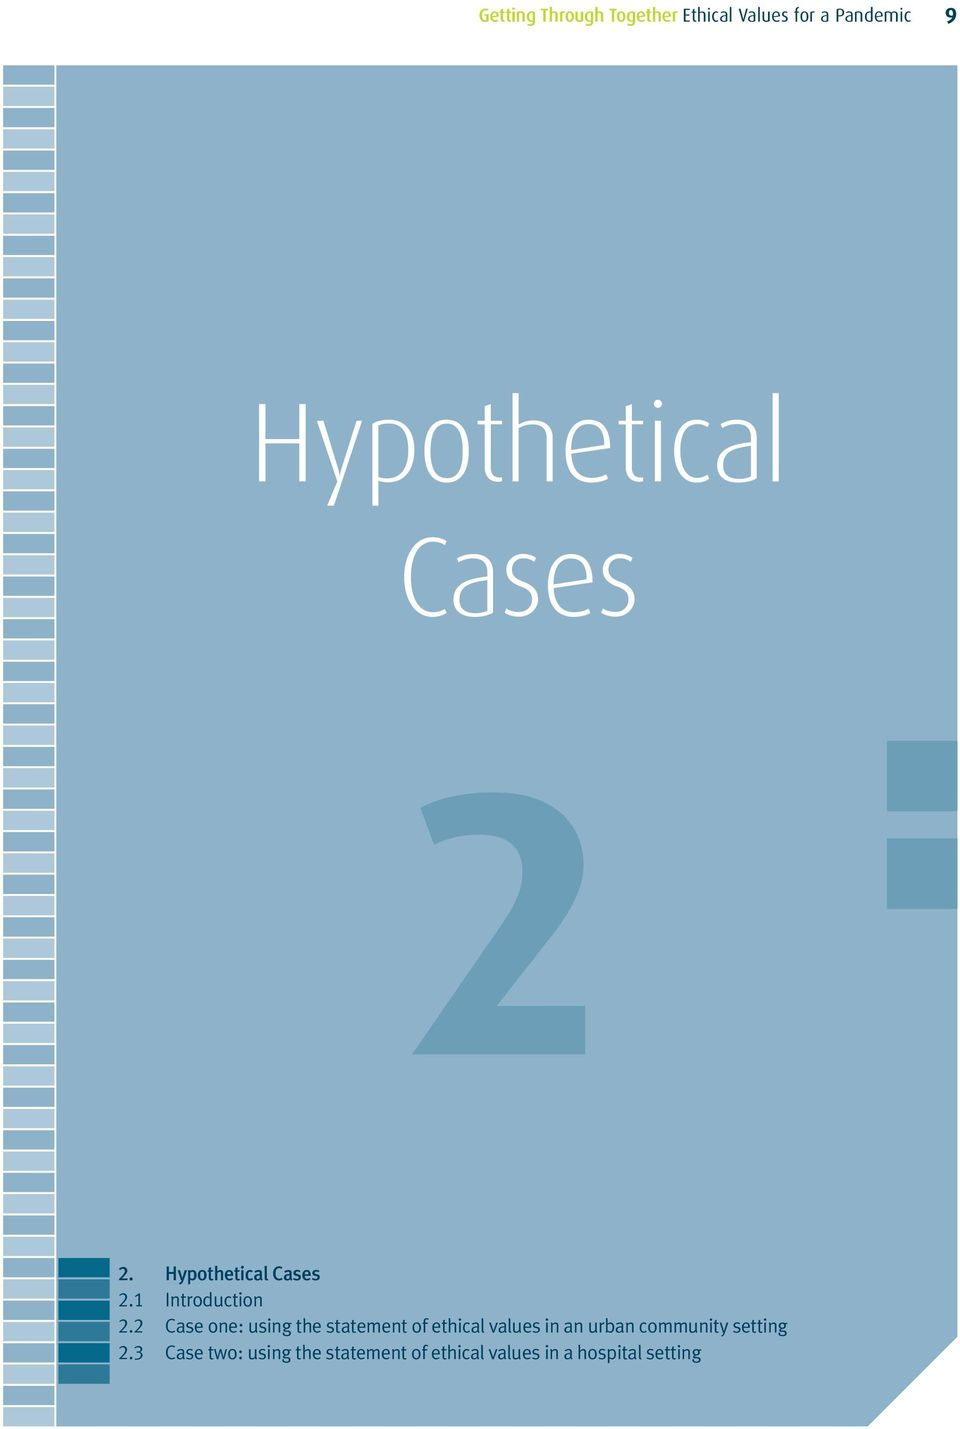 2 Case one: using the statement of ethical values in an urban